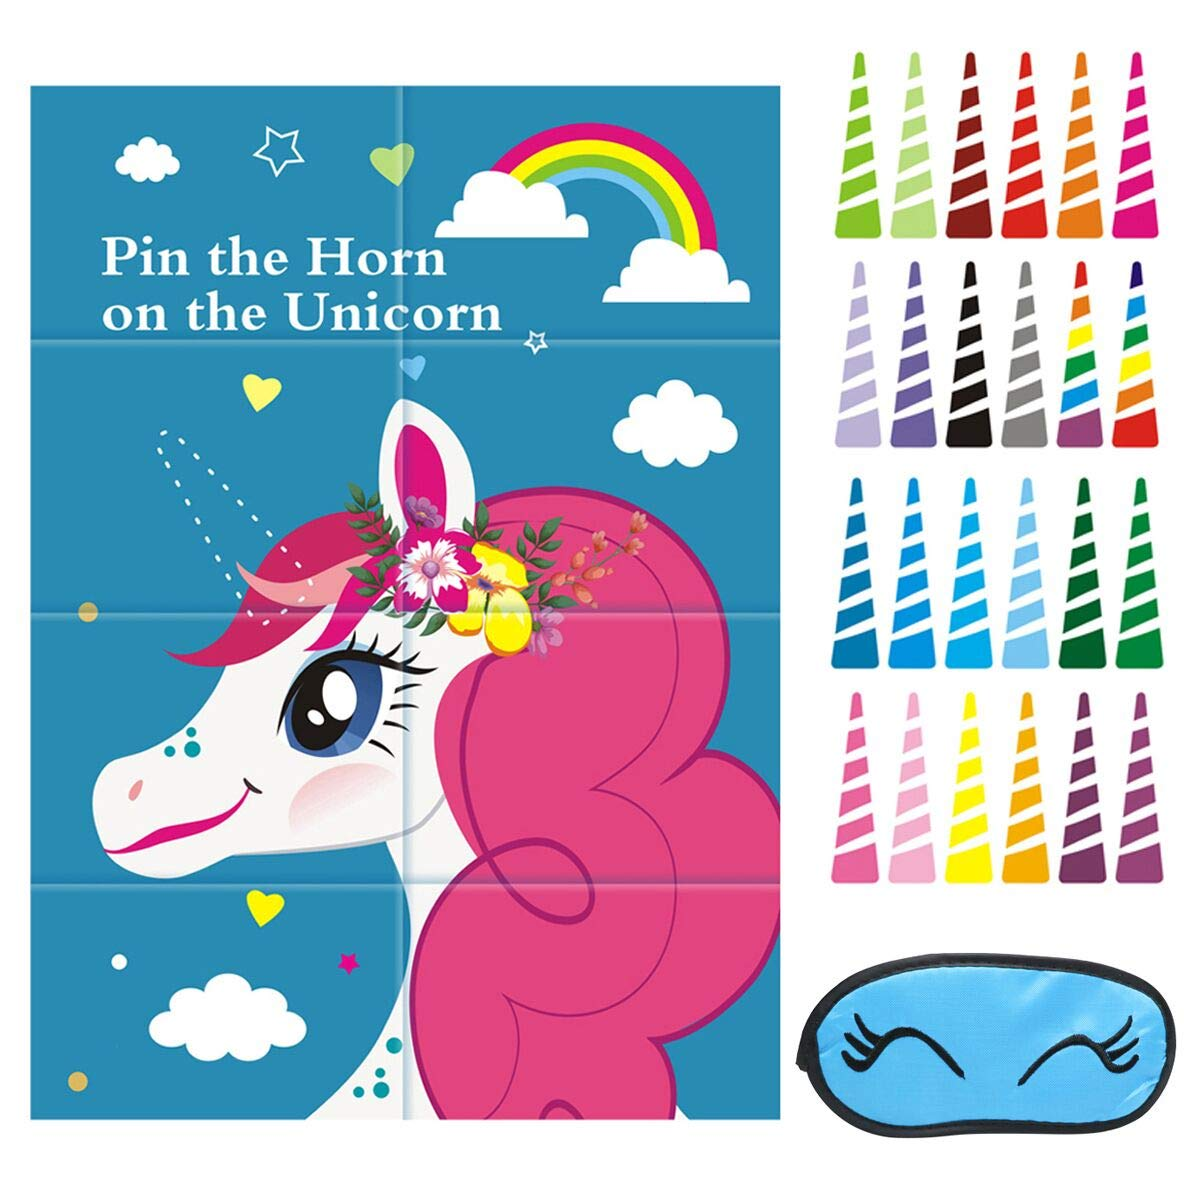 Exqline Pin the Horn on the Unicorn Game Birthday Party Favor Games Unicorn Party Supplies Unicorn Gifts for Girls Boys Game Include a Large Poster 24 Reusable Sticker Horns and 1 PCS Eye Mask.